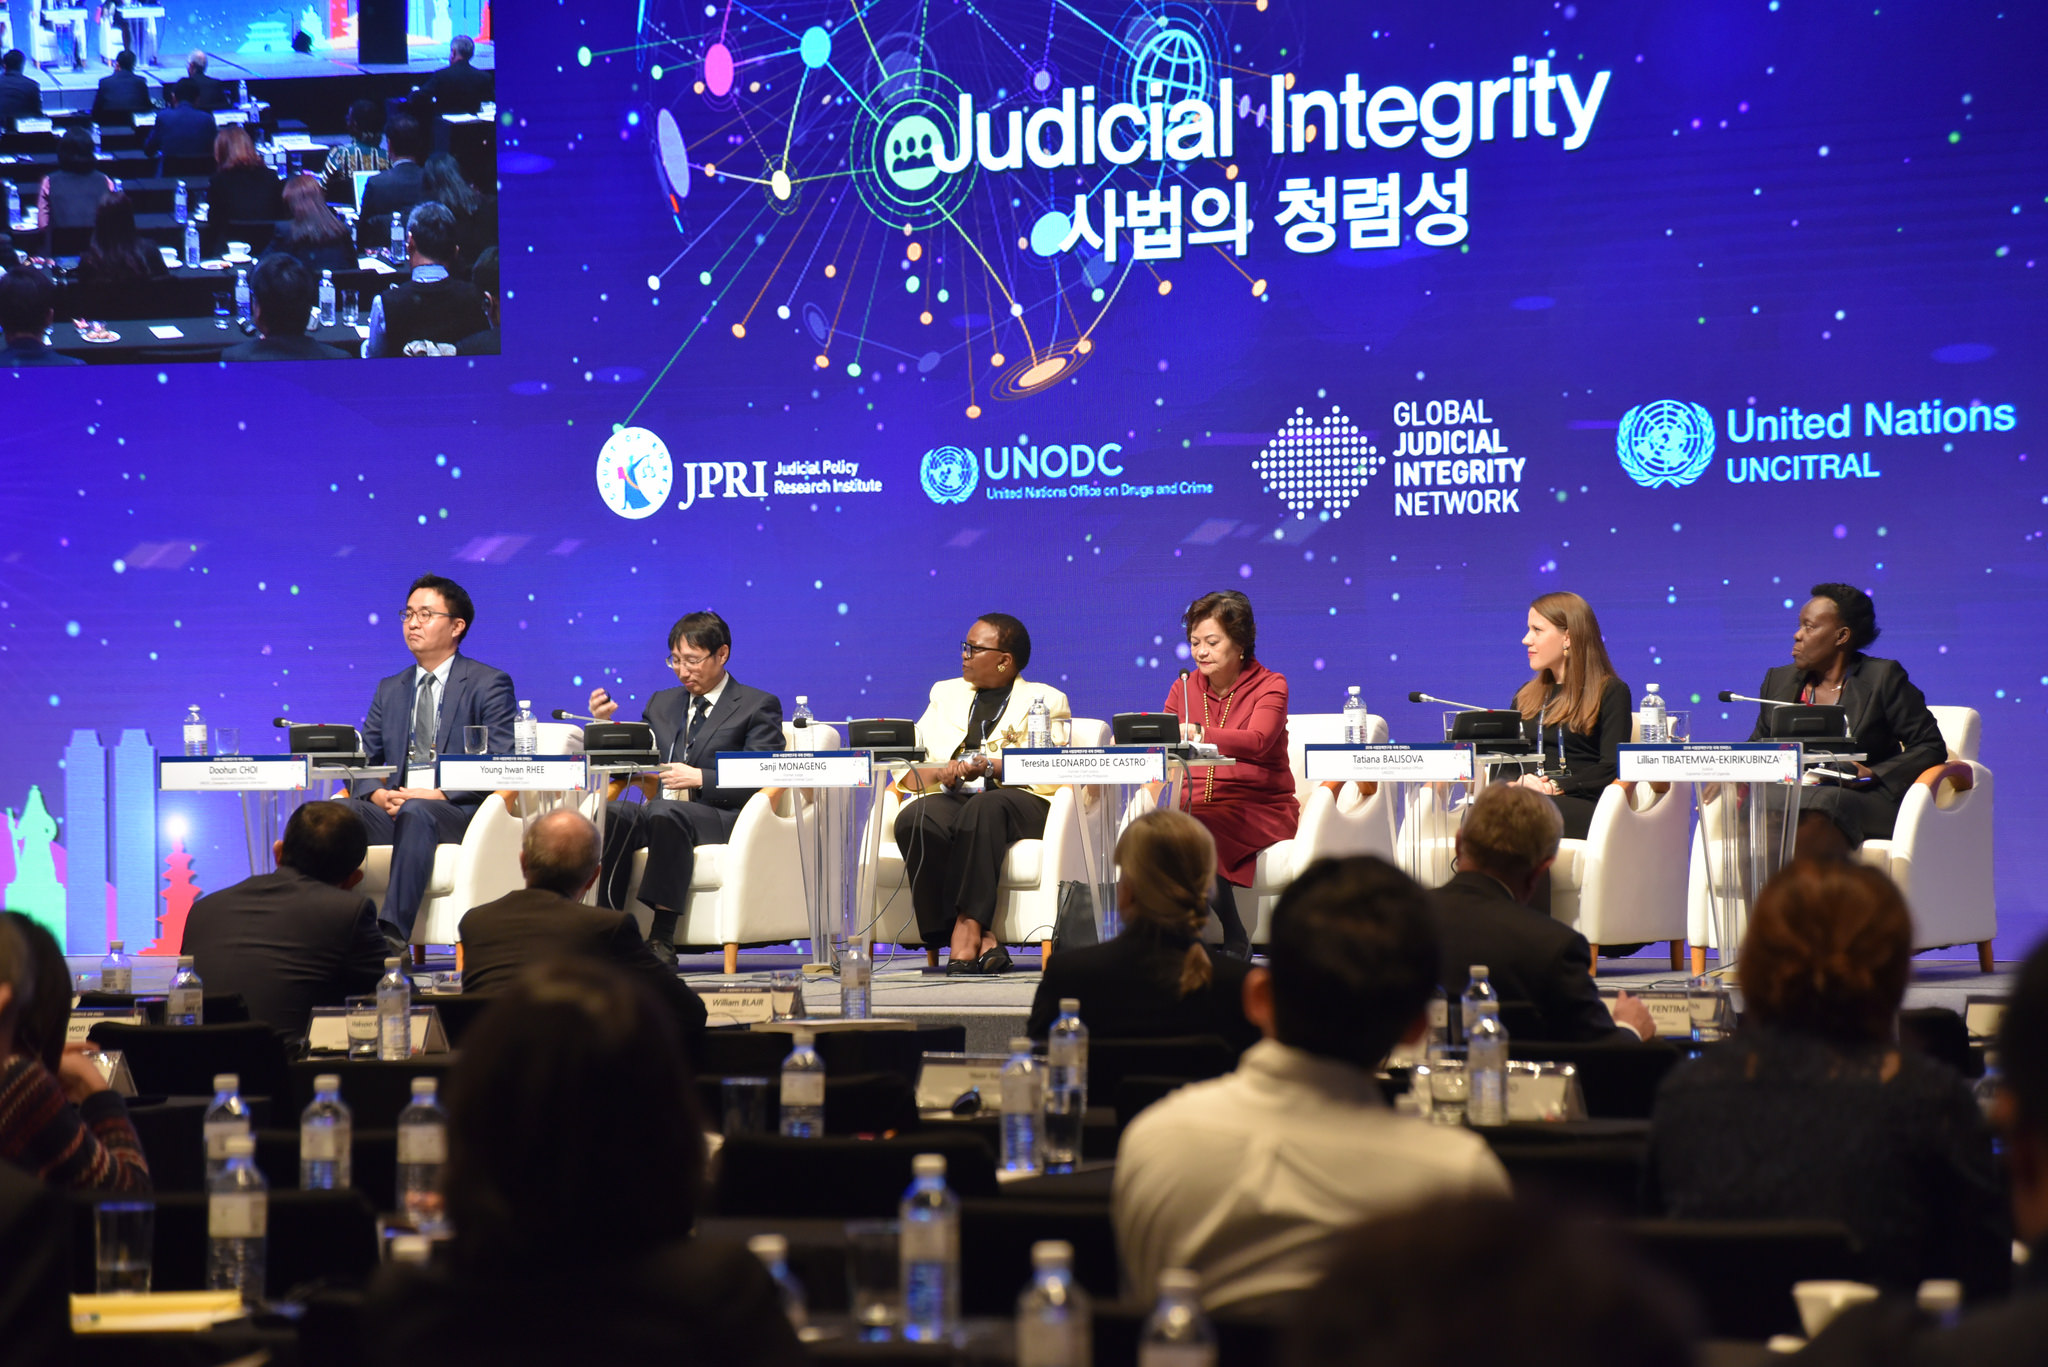 Modern judicial challenges, such as gender and AI, at the heart of debates in Seoul